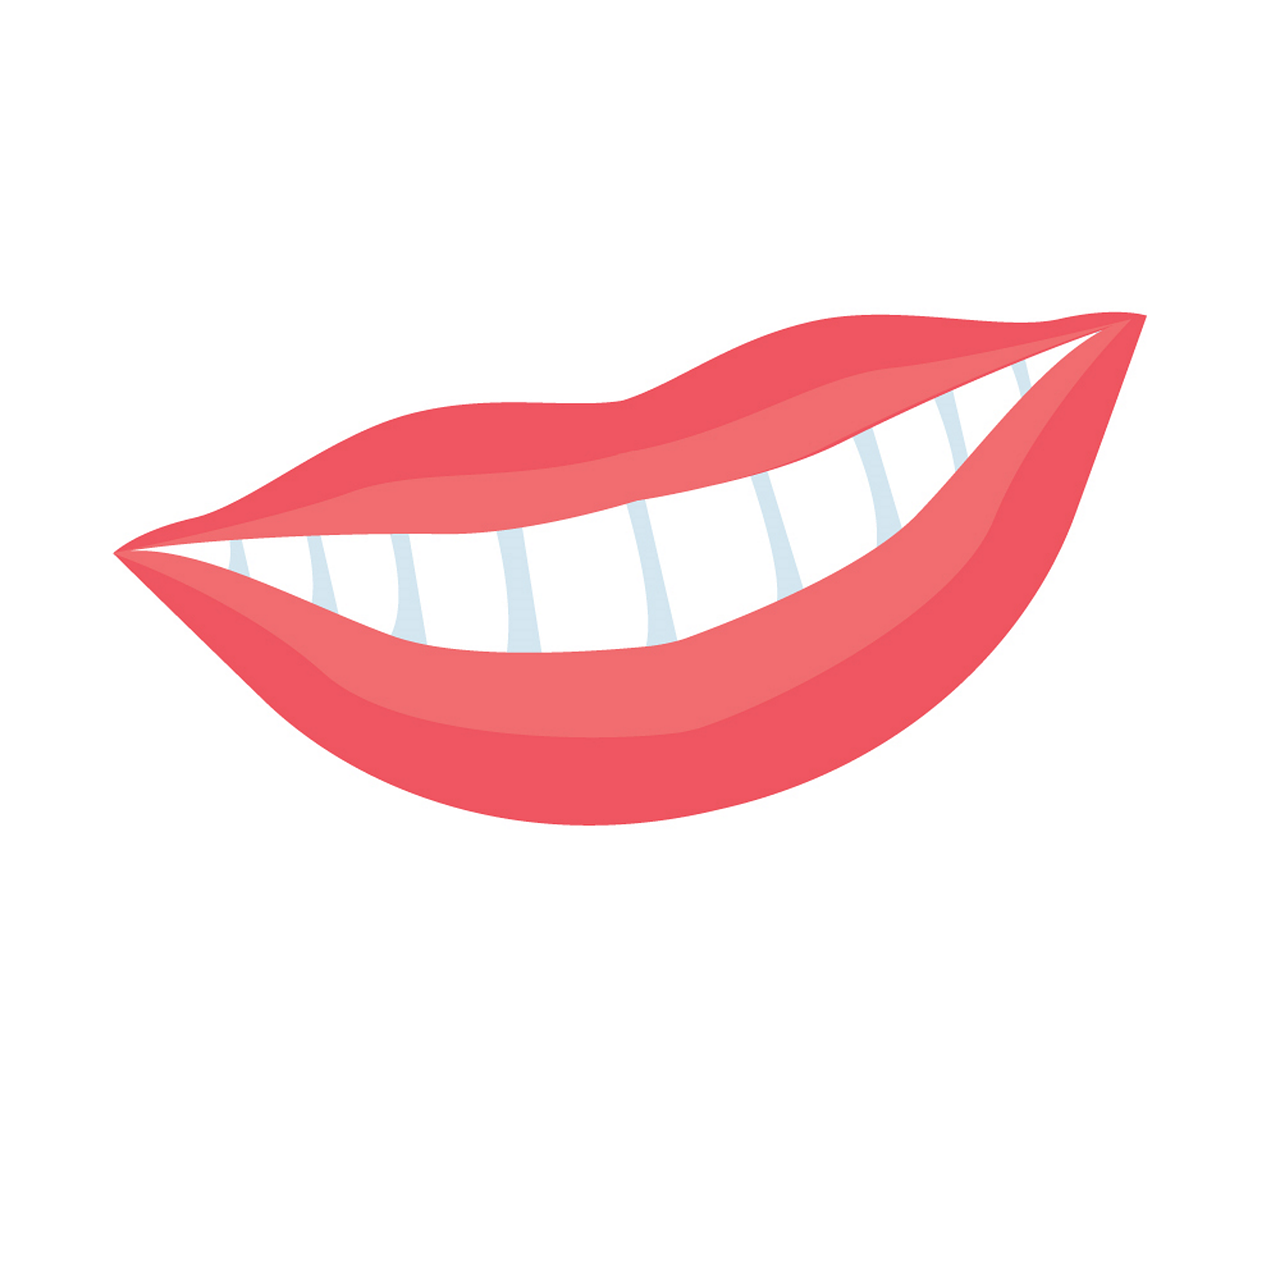 What Oral Health Concerns Are Caused by Dry Mouth?